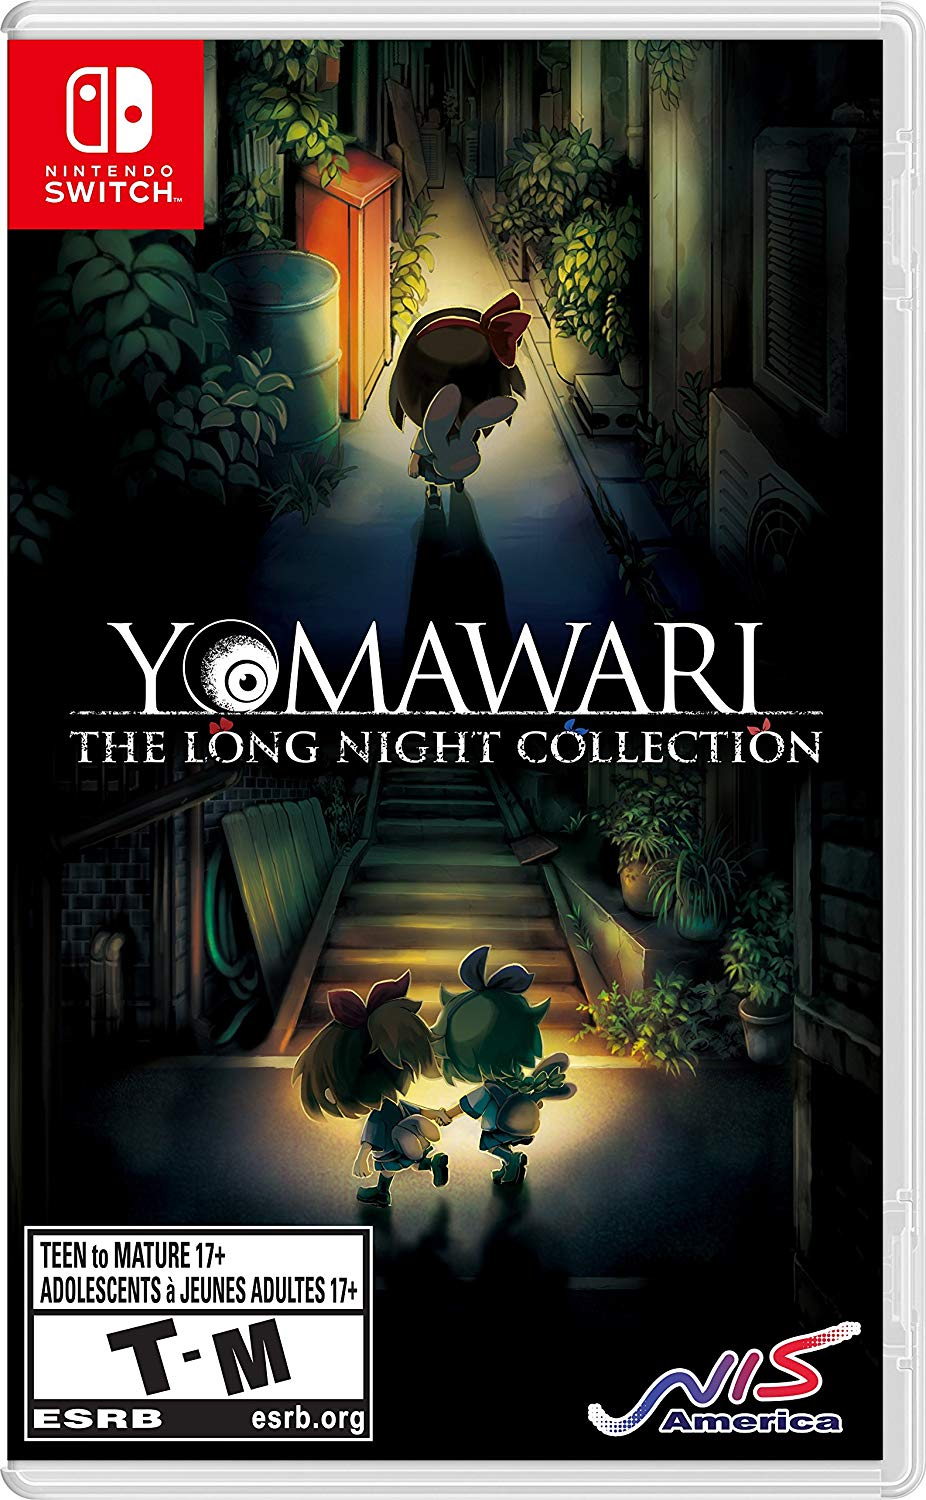 Yomawari - The Long Night Collection